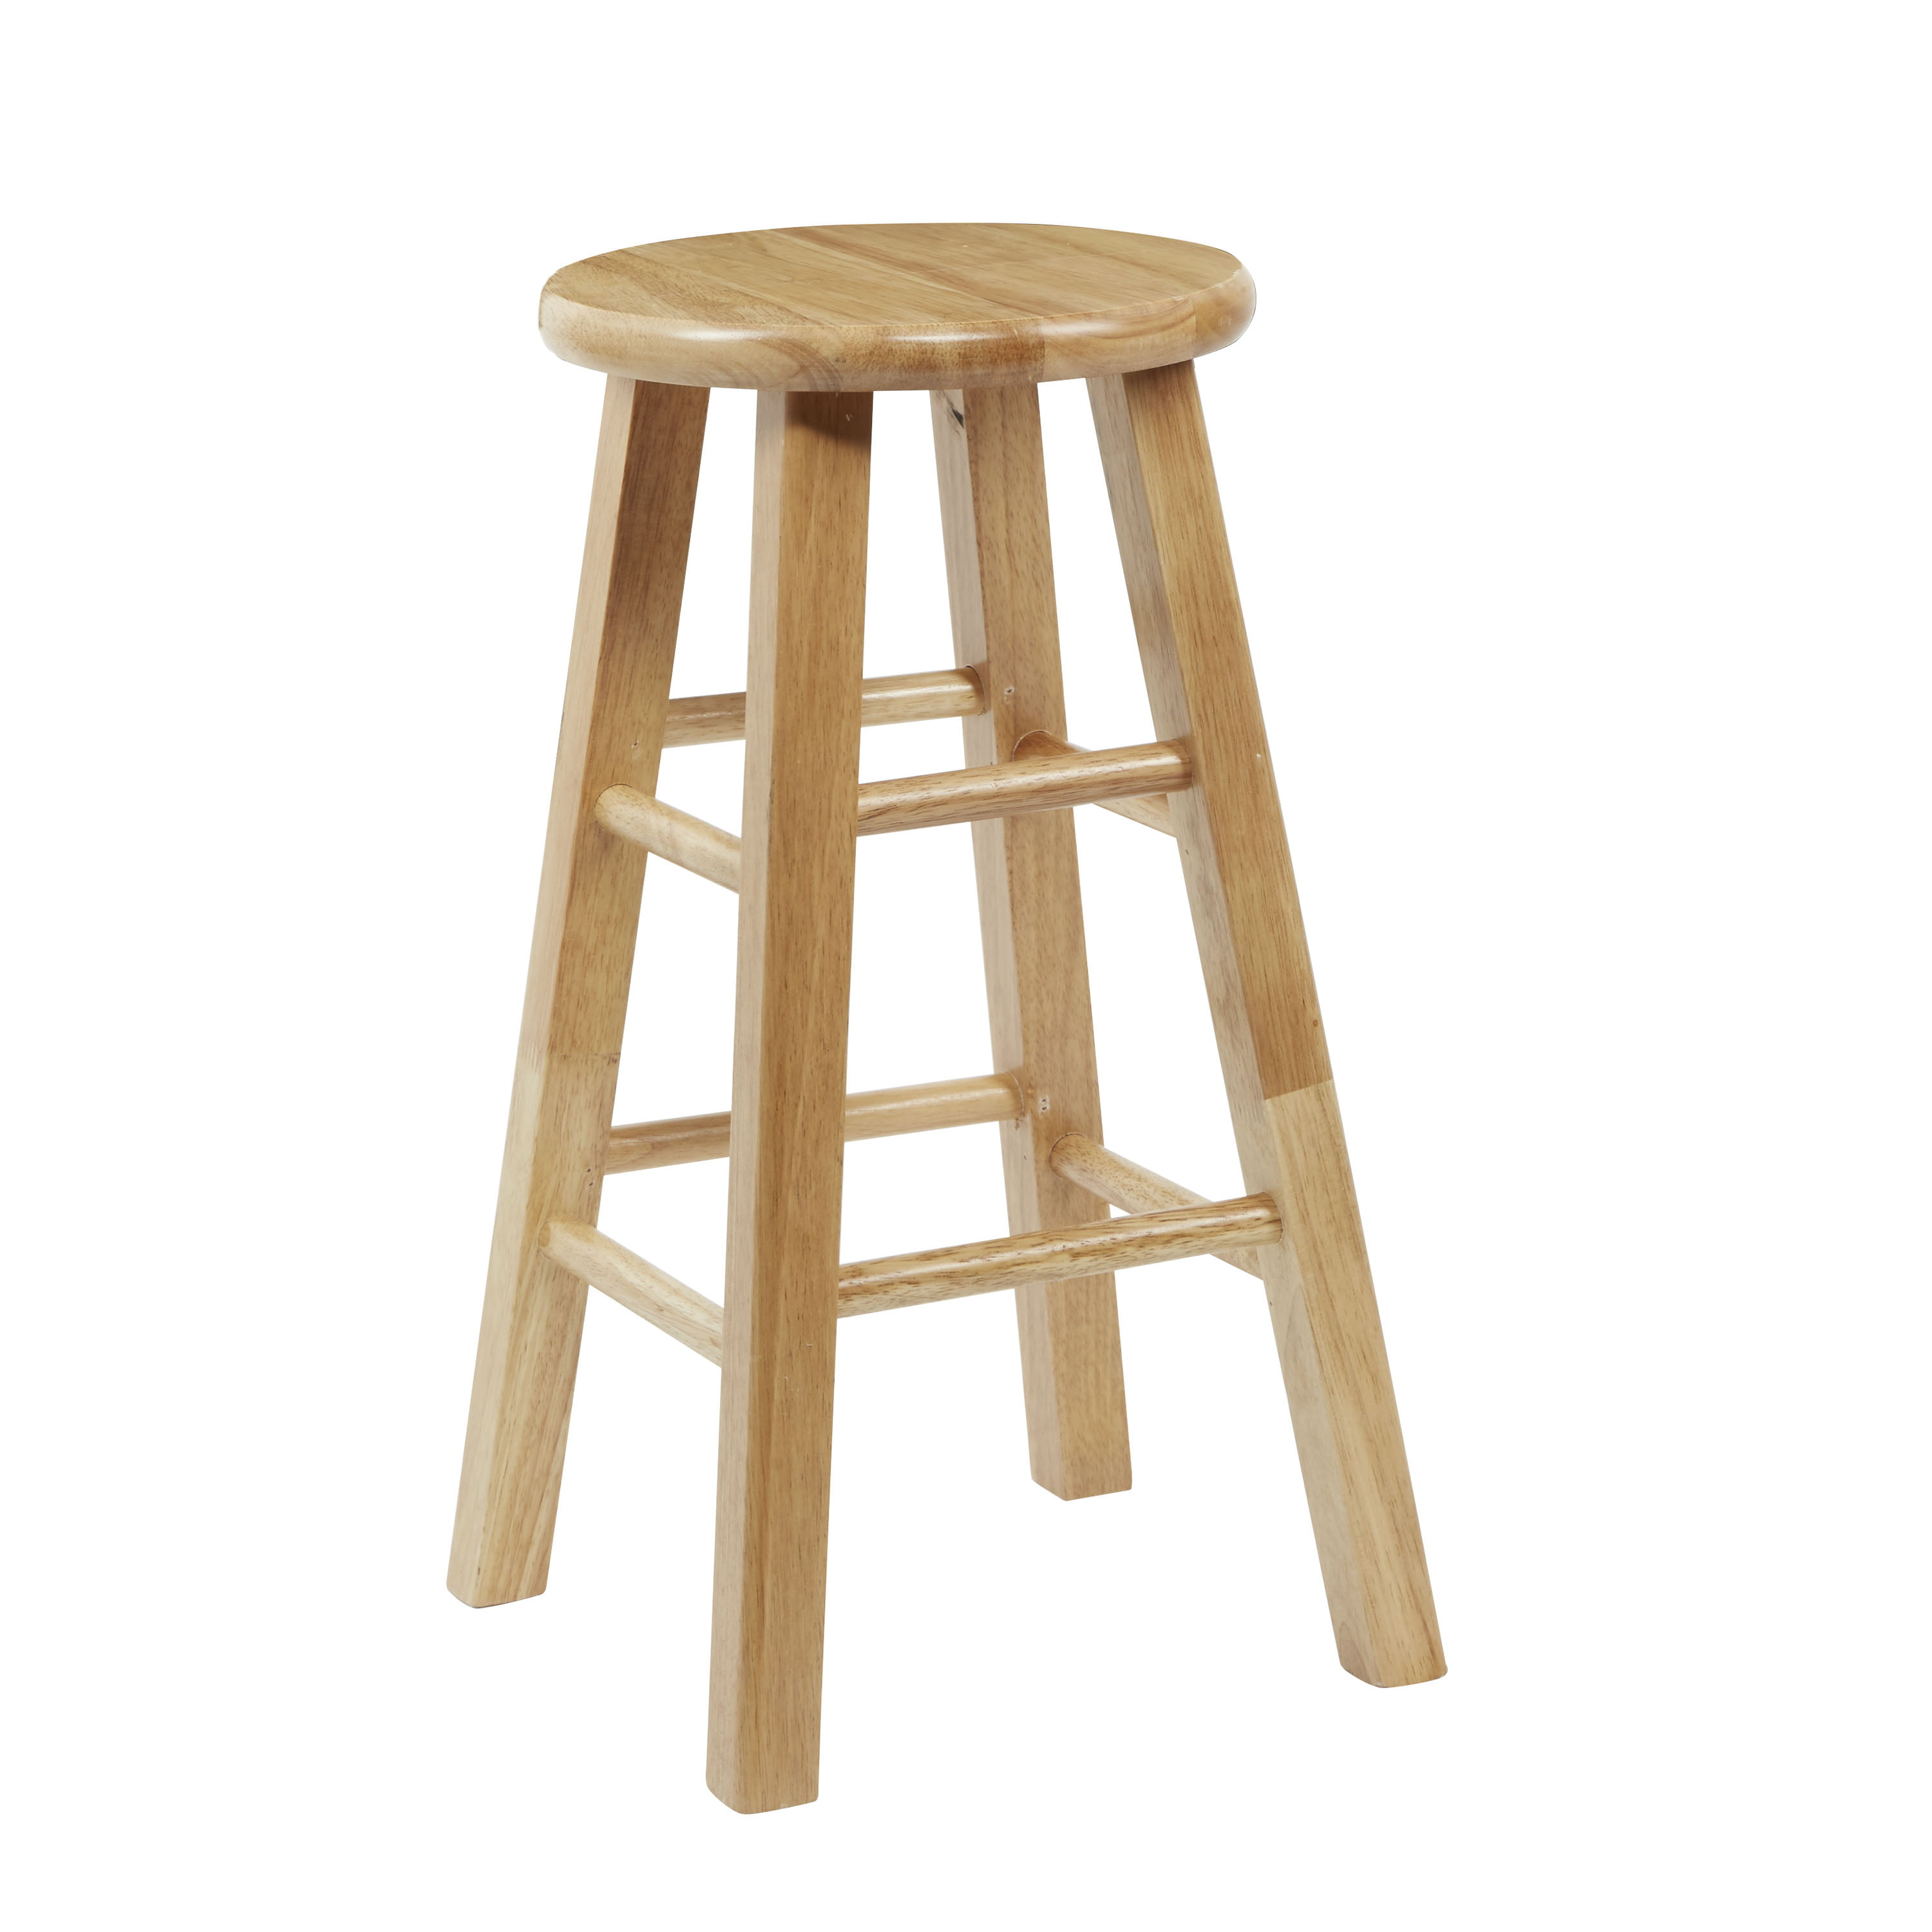 Fantastic Mainstays Fully Assembled 24 Natural Wood Bar Stool Squirreltailoven Fun Painted Chair Ideas Images Squirreltailovenorg